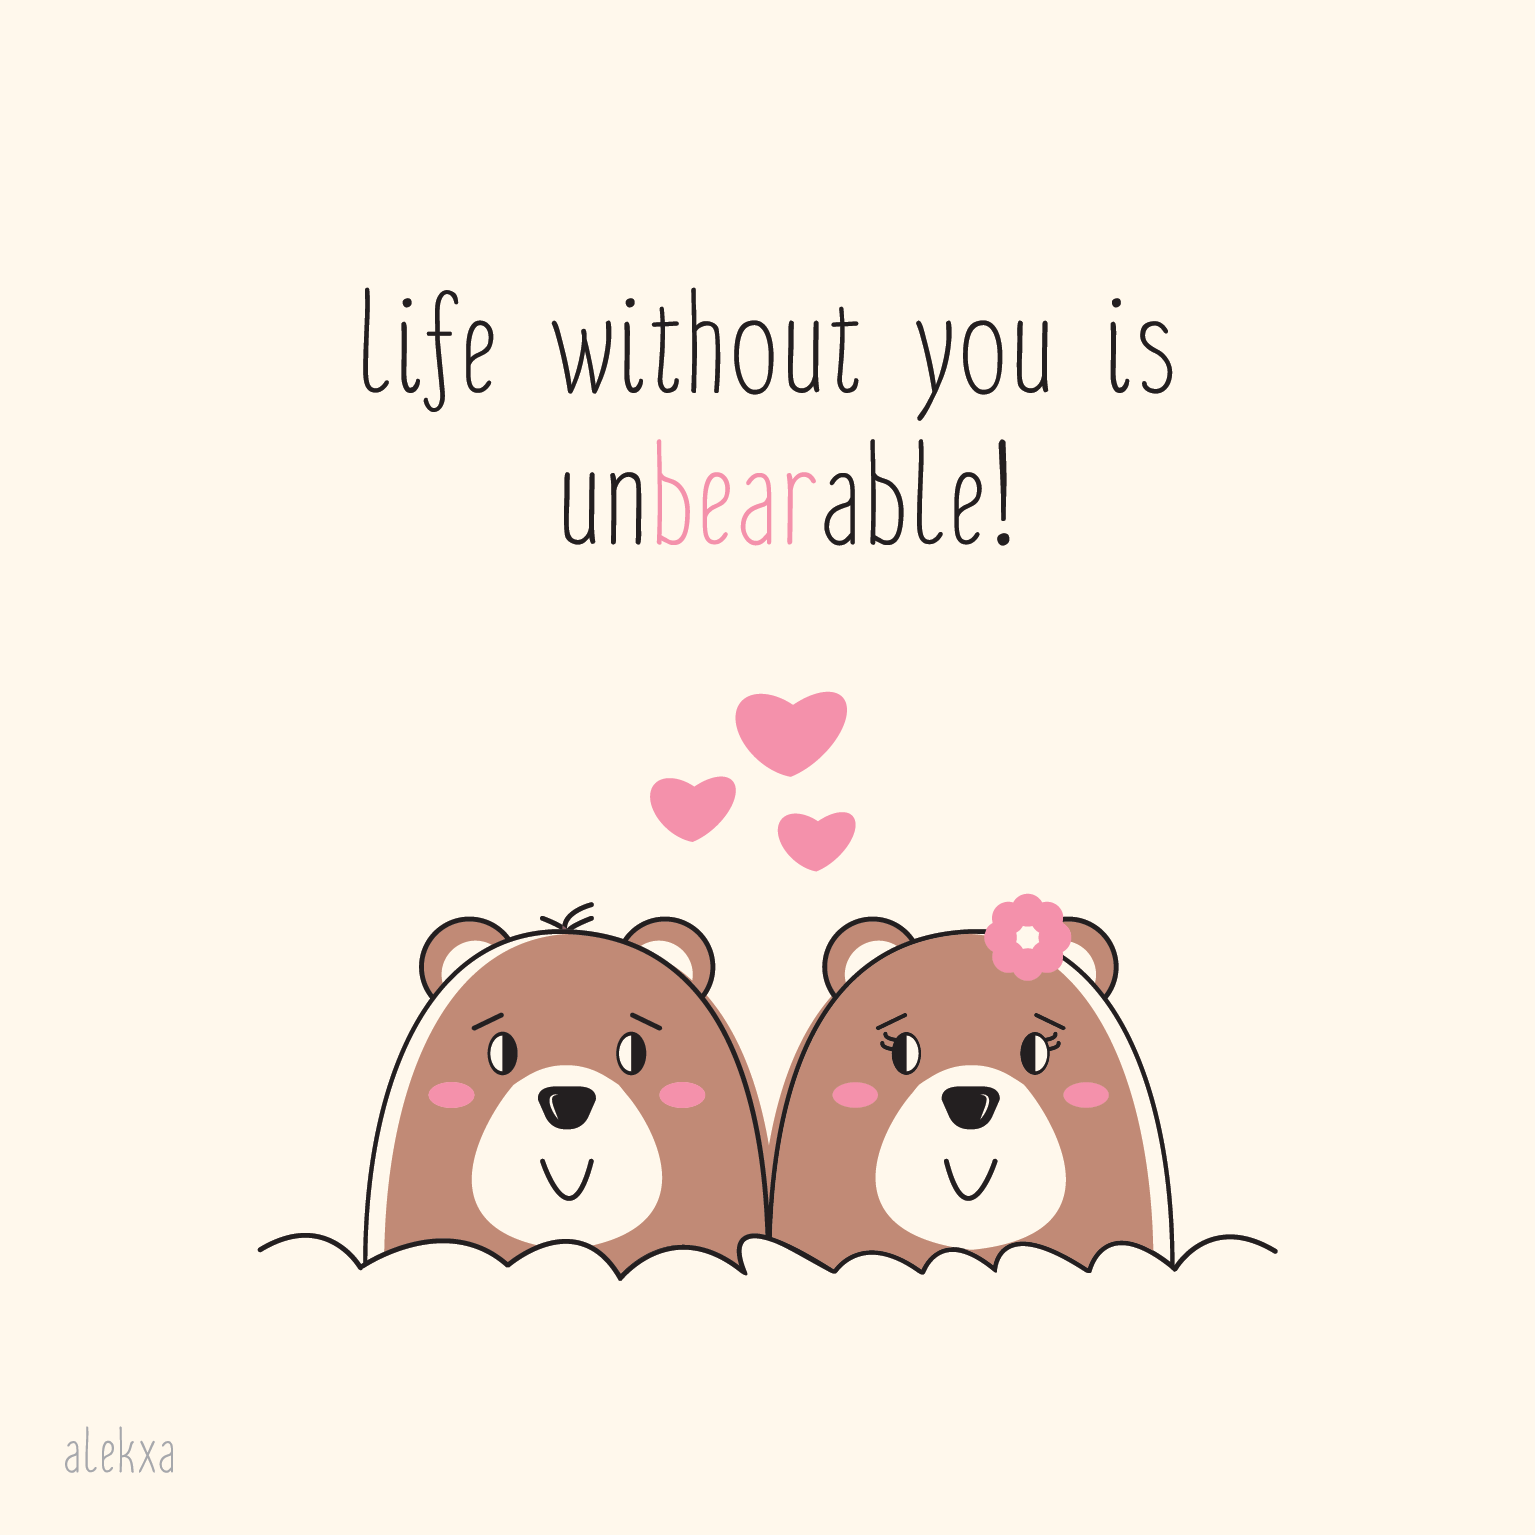 Life Without You Is unbearable - Unbearable PNG